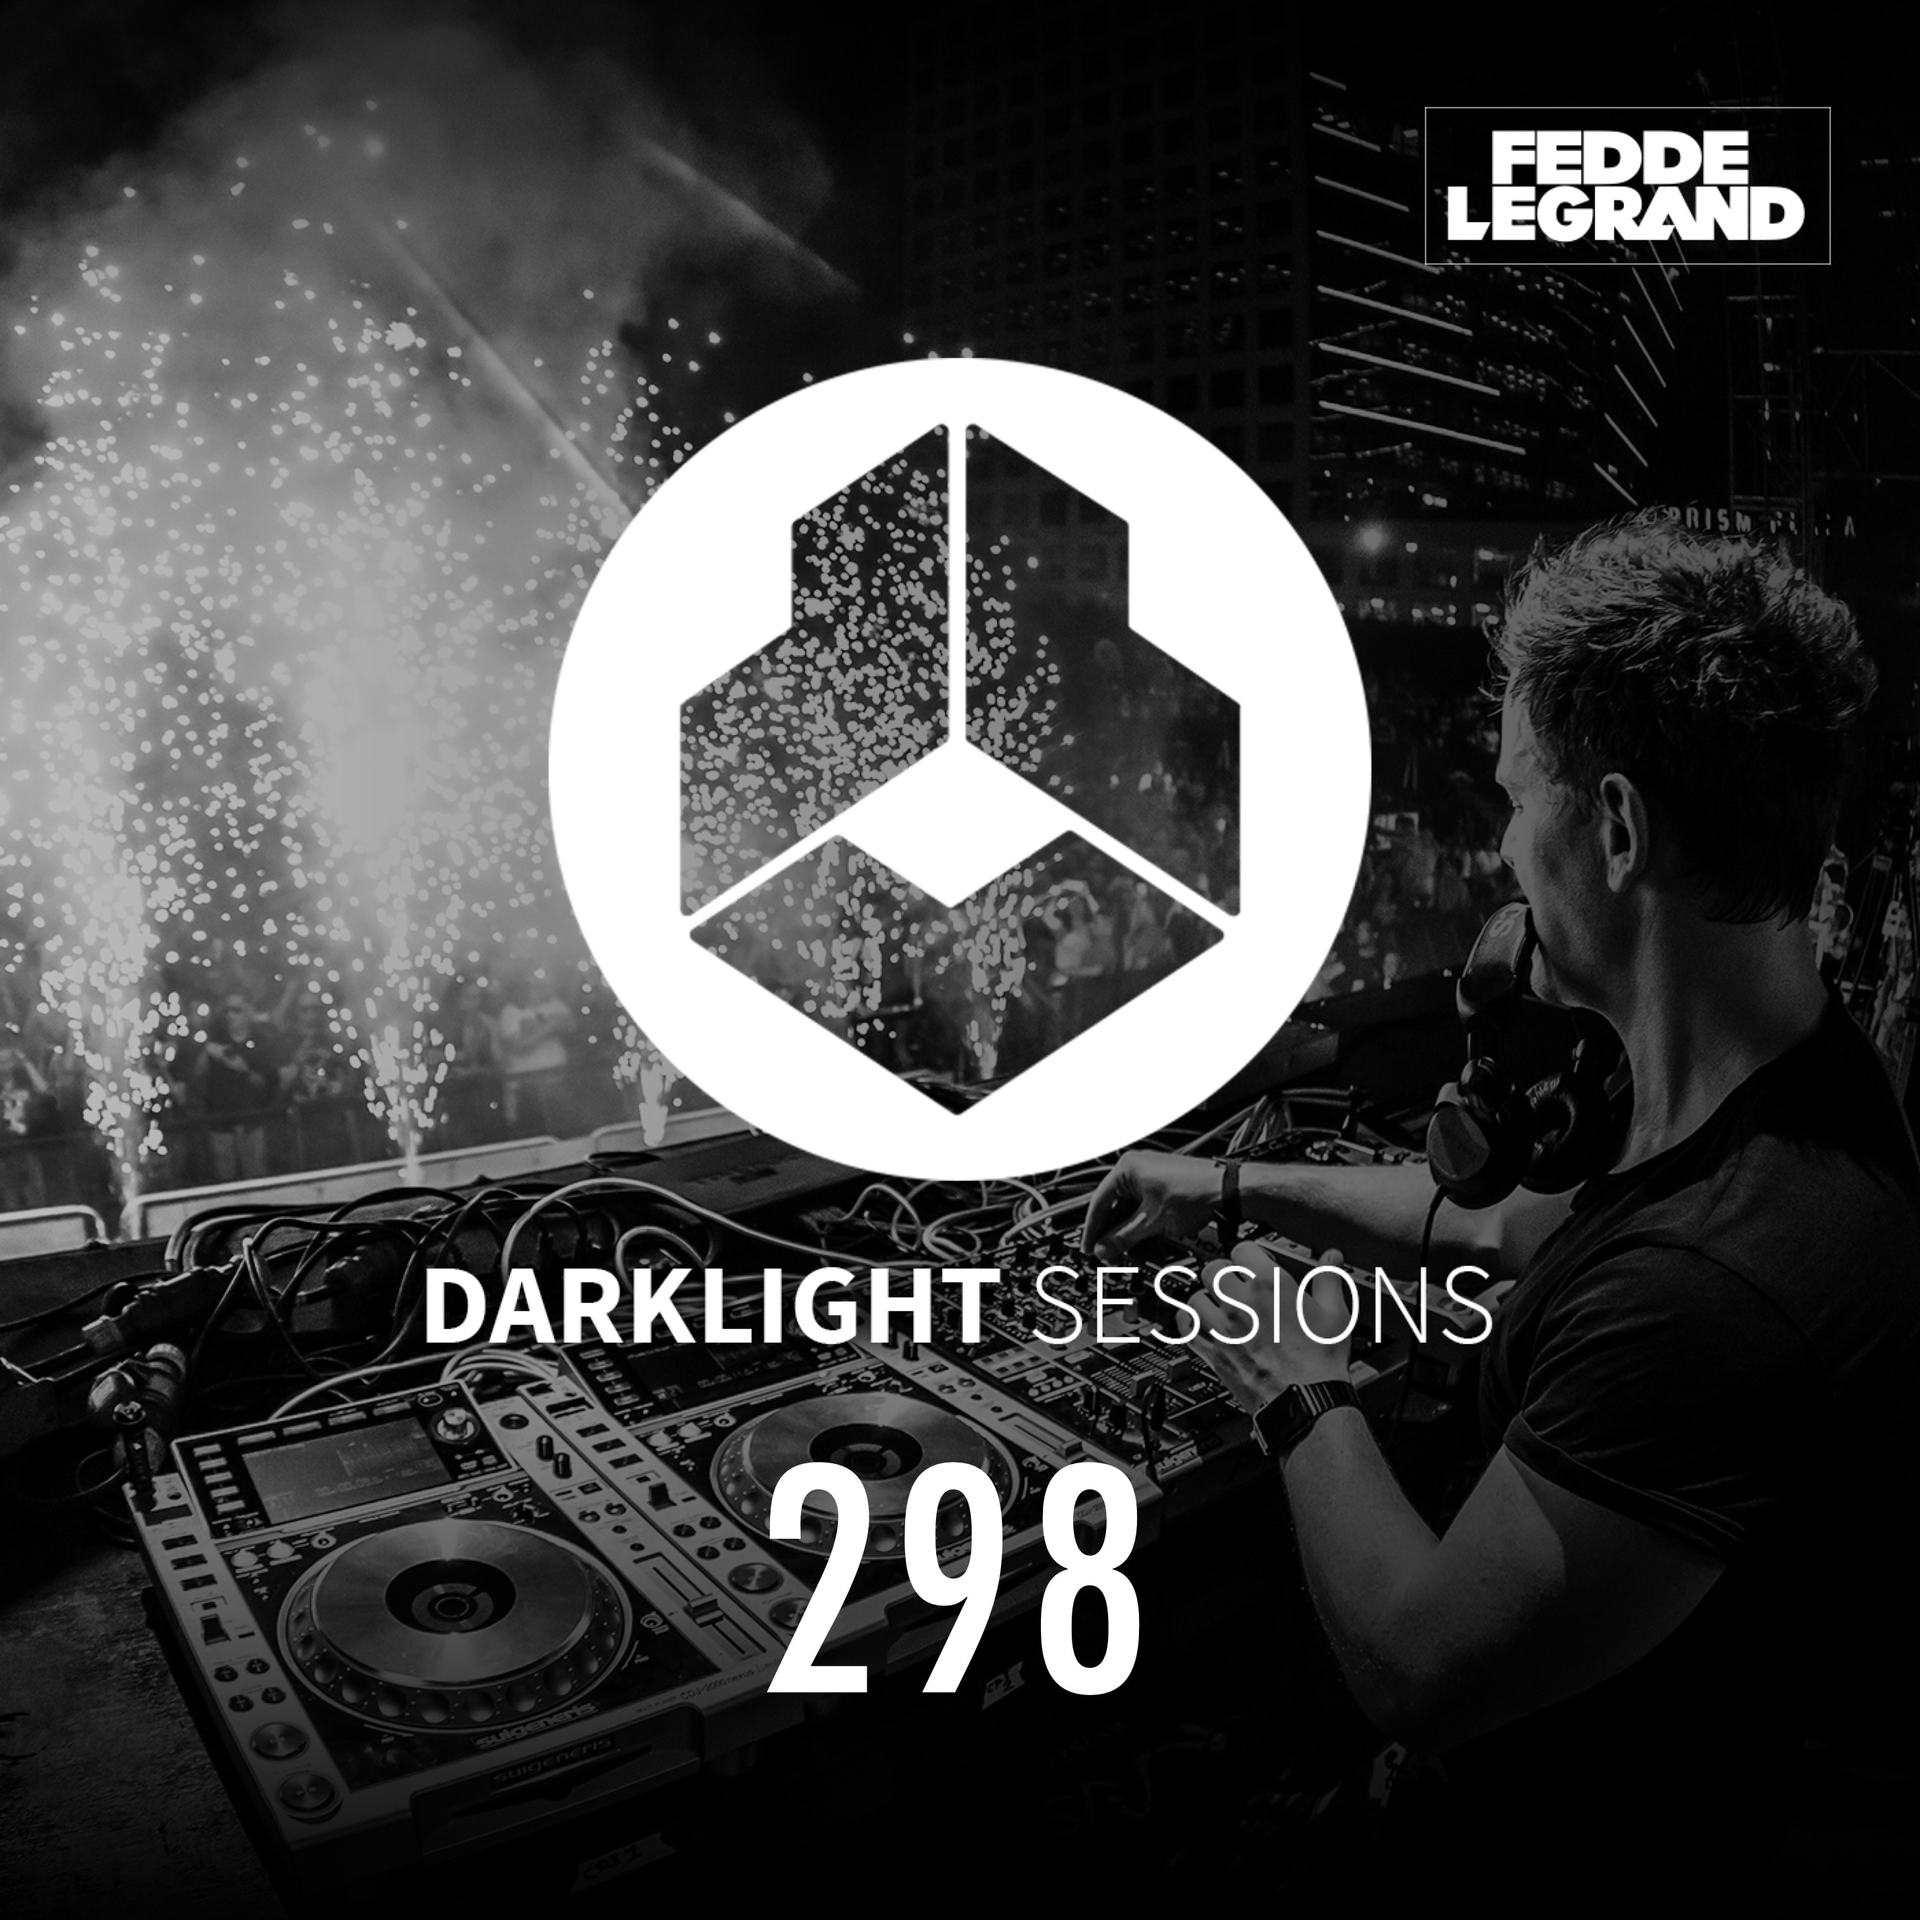 Darklight Sessions 298